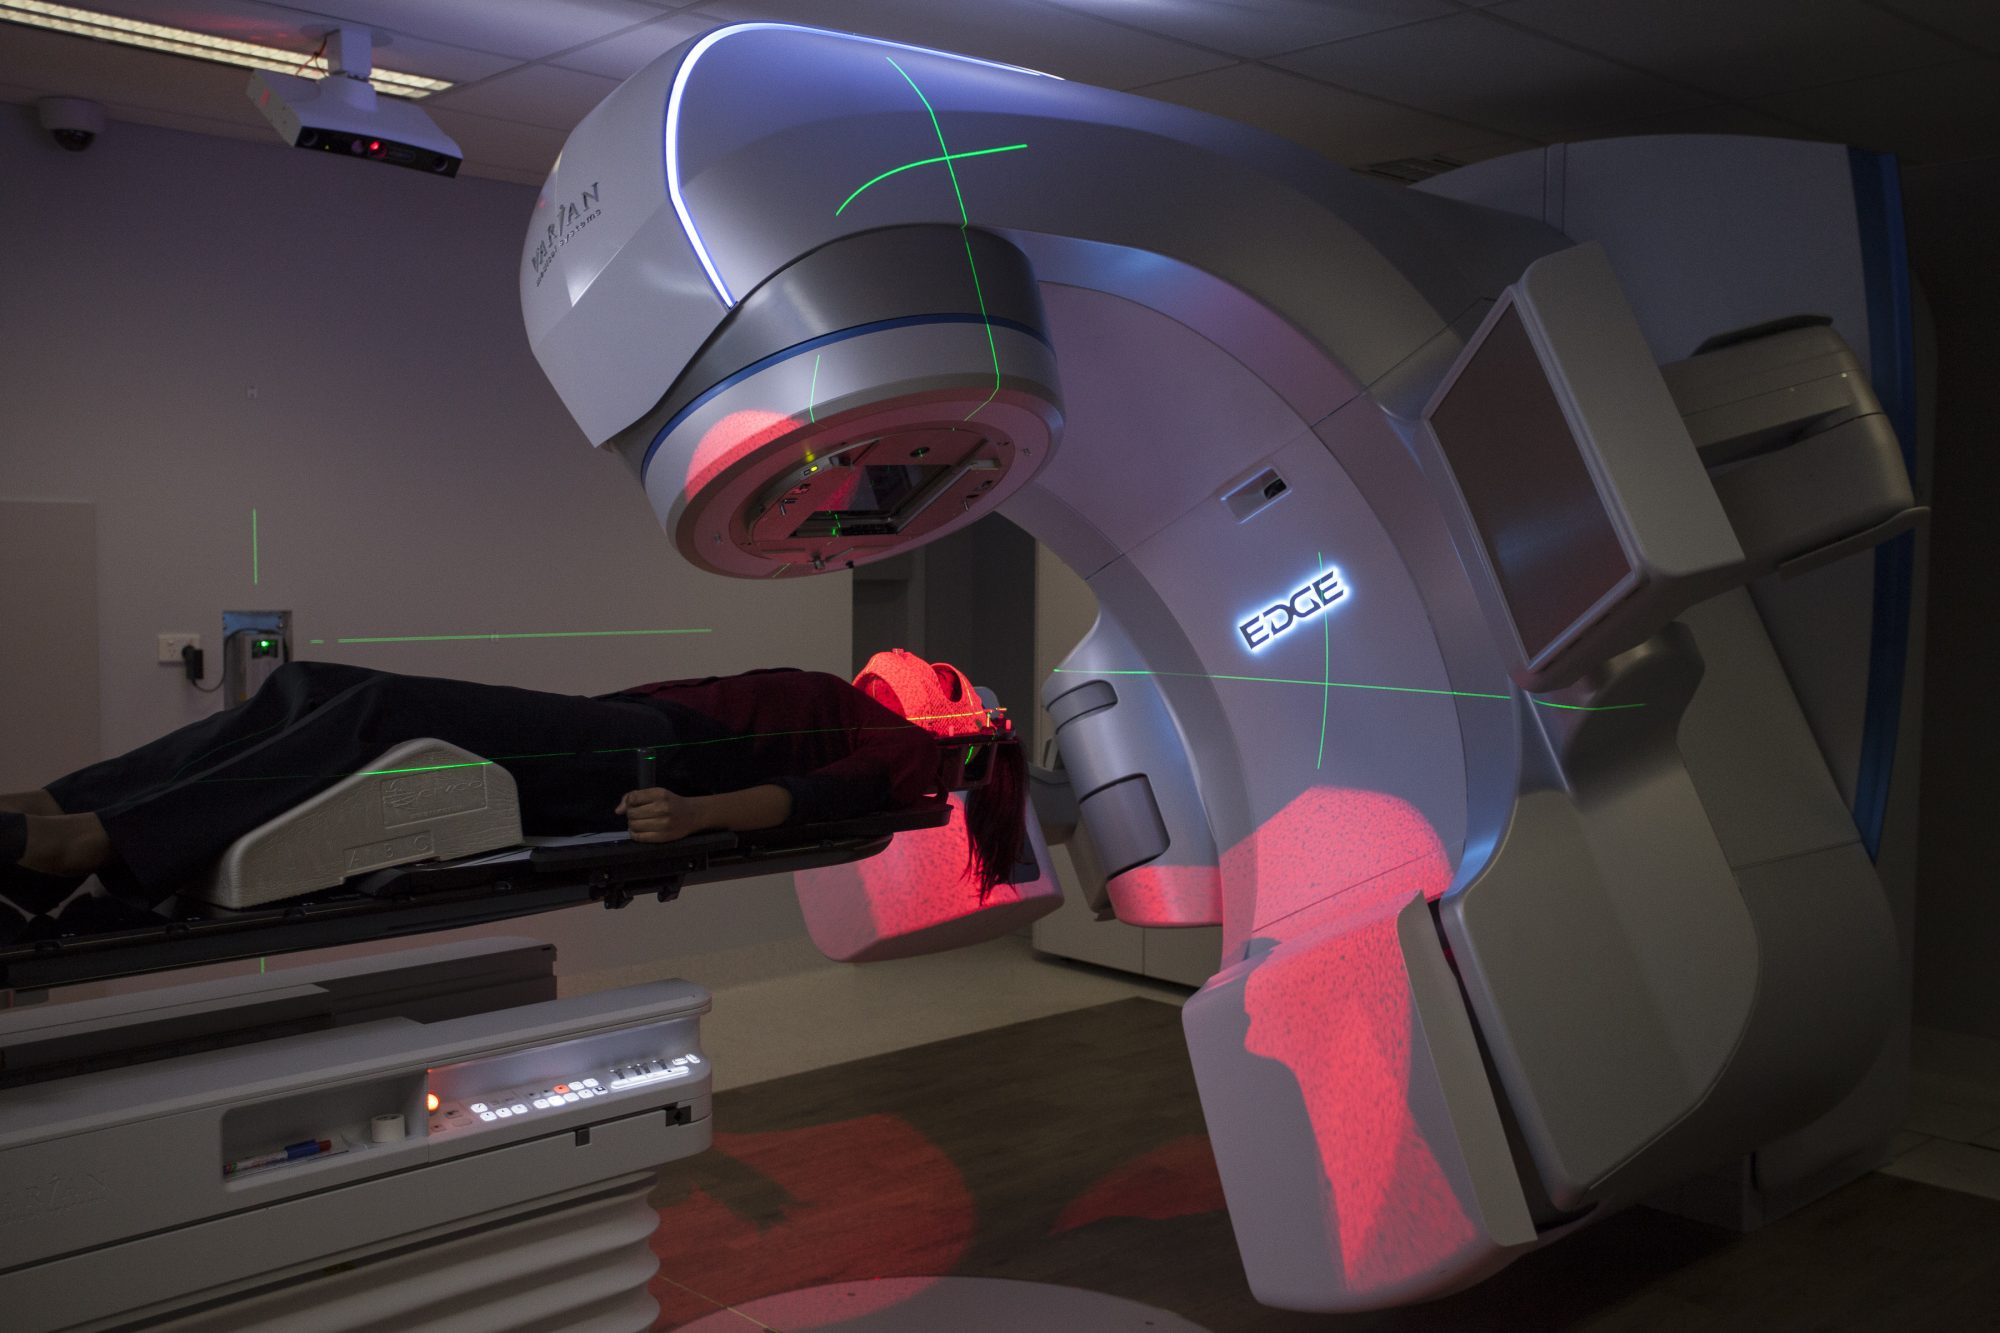 21st Century Oncology Begins Surface Guided Radiation Therapy with AlignRT